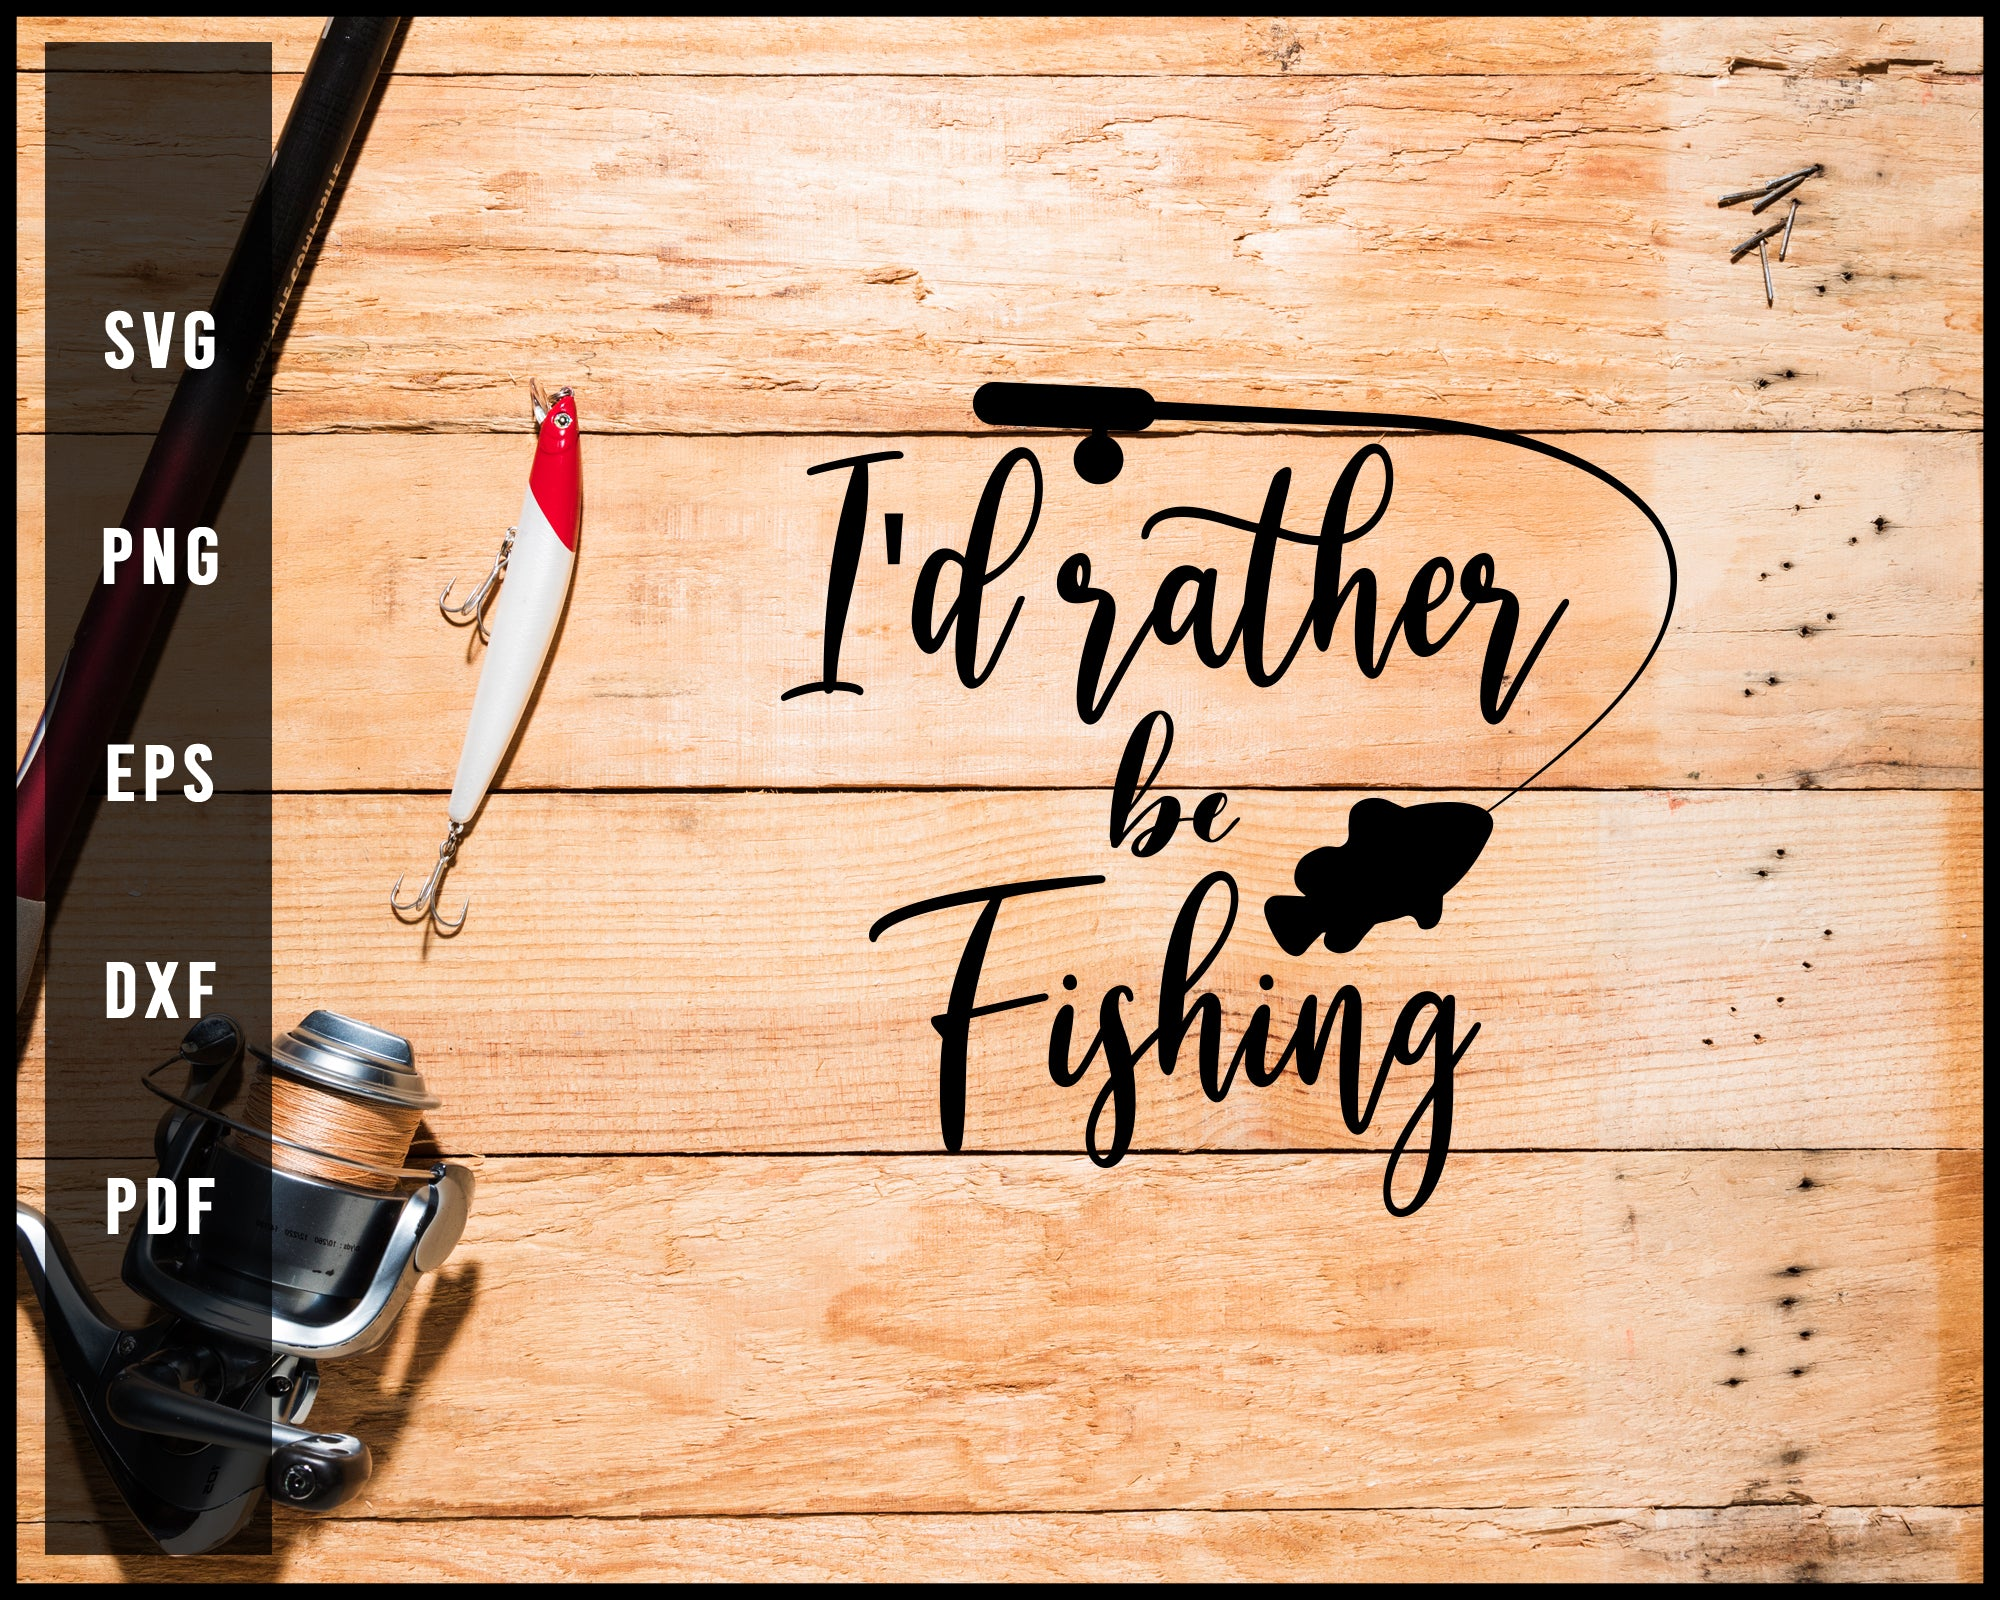 I D Rather Be Fishing Svg Png Silhouette Designs For Cricut And Printa Creativedesignmaker